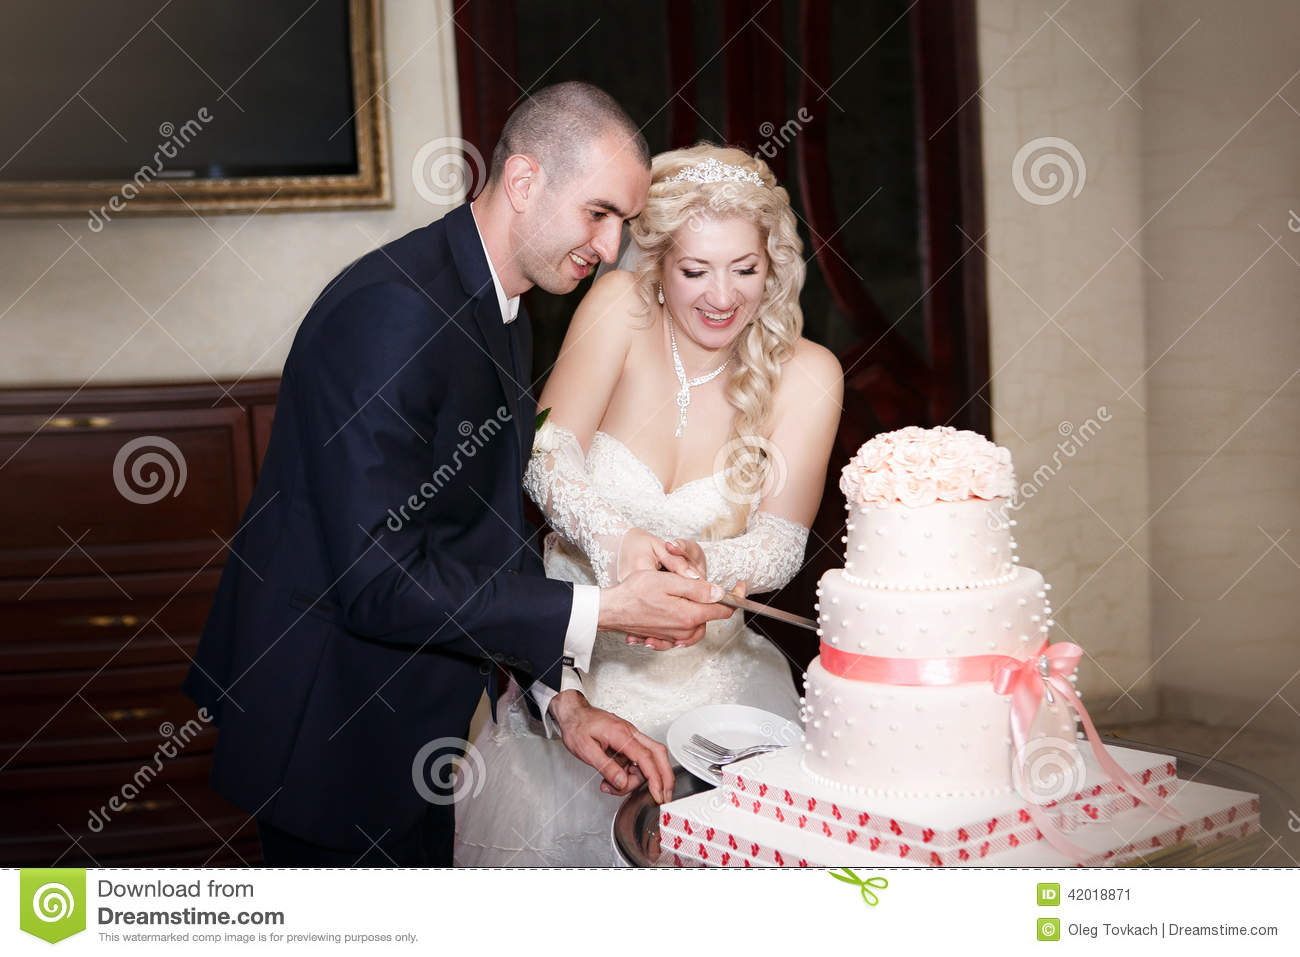 how does the bride and groom cut wedding cake and groom cutting the wedding cake stock image 15365